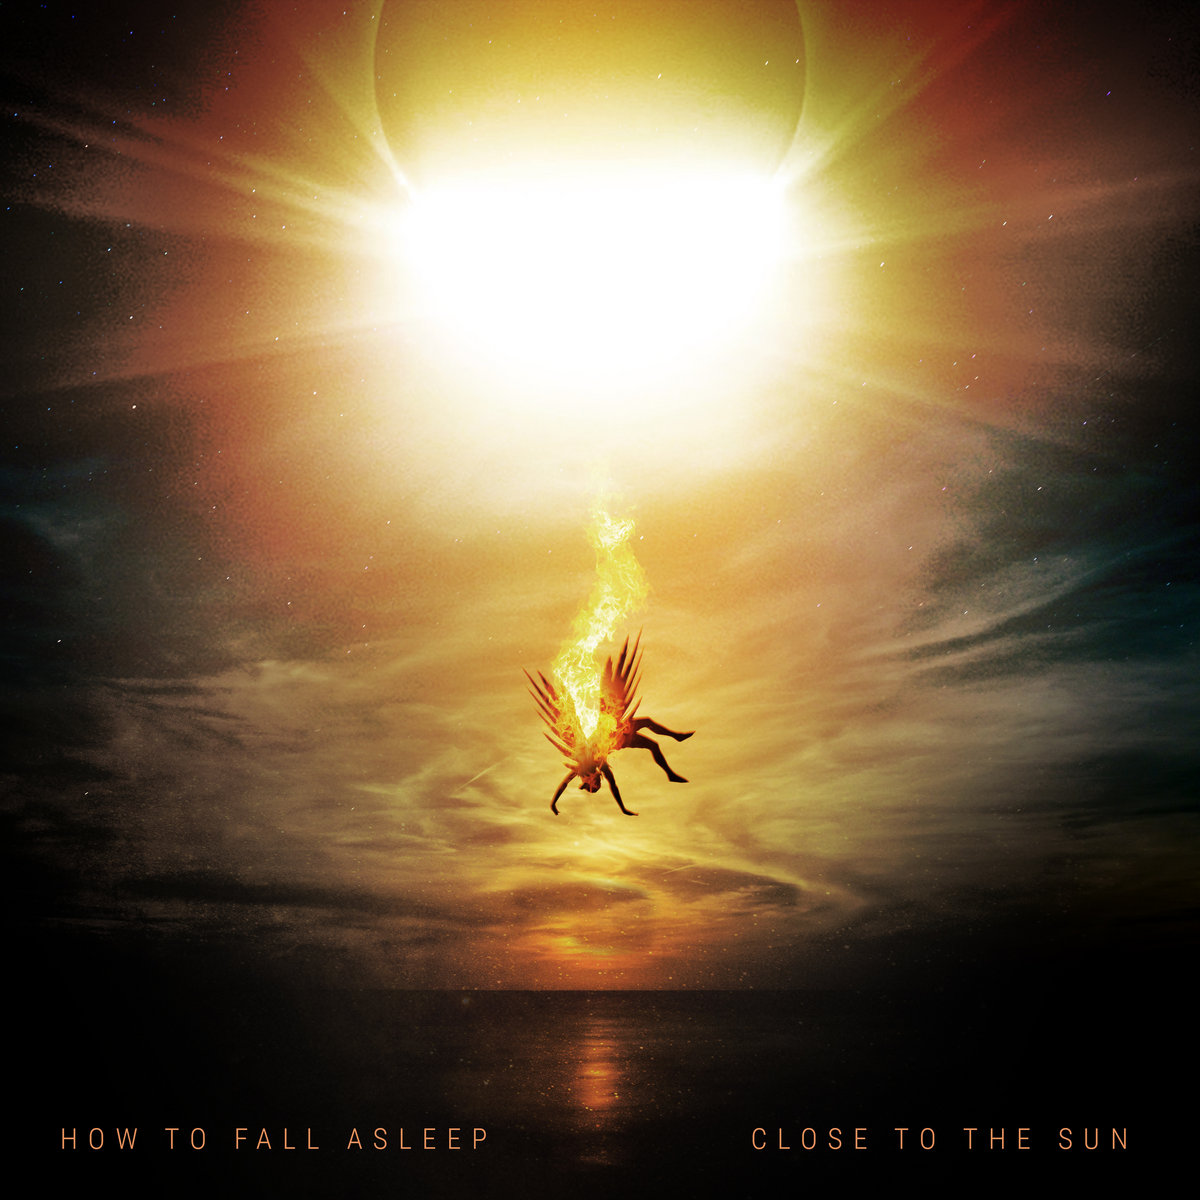 How to Fall Asleep - Close to the Sun (2018)